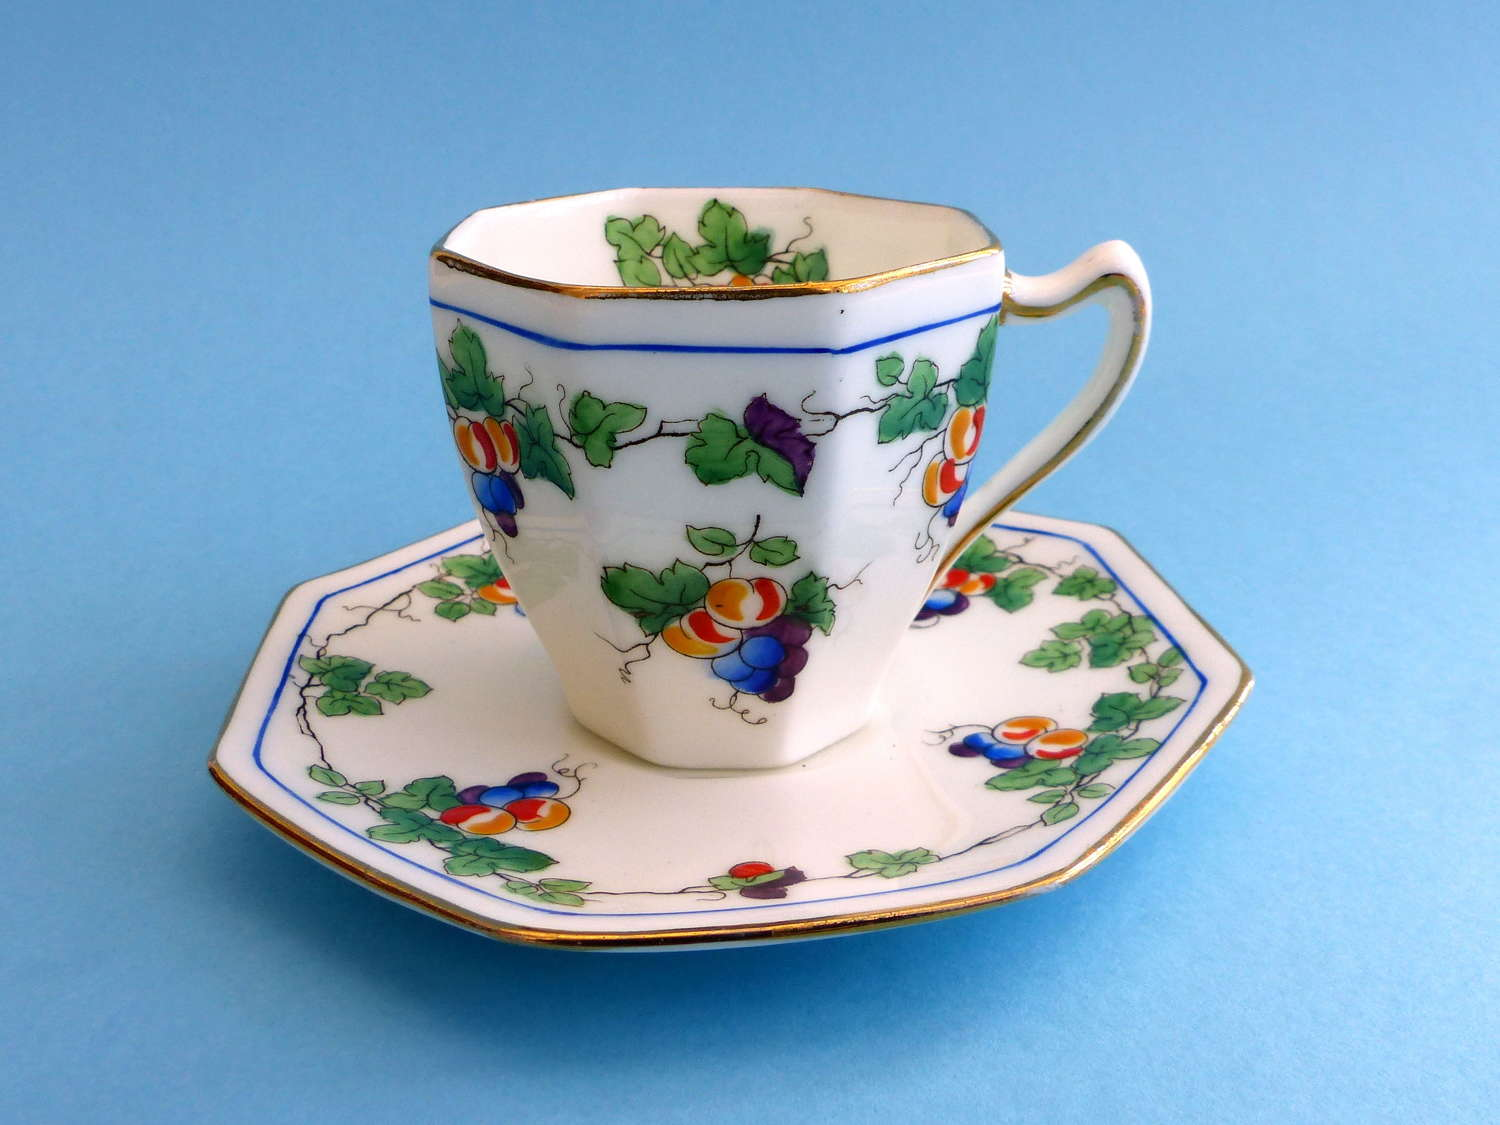 Royal Doulton Art Deco Cup and Saucer